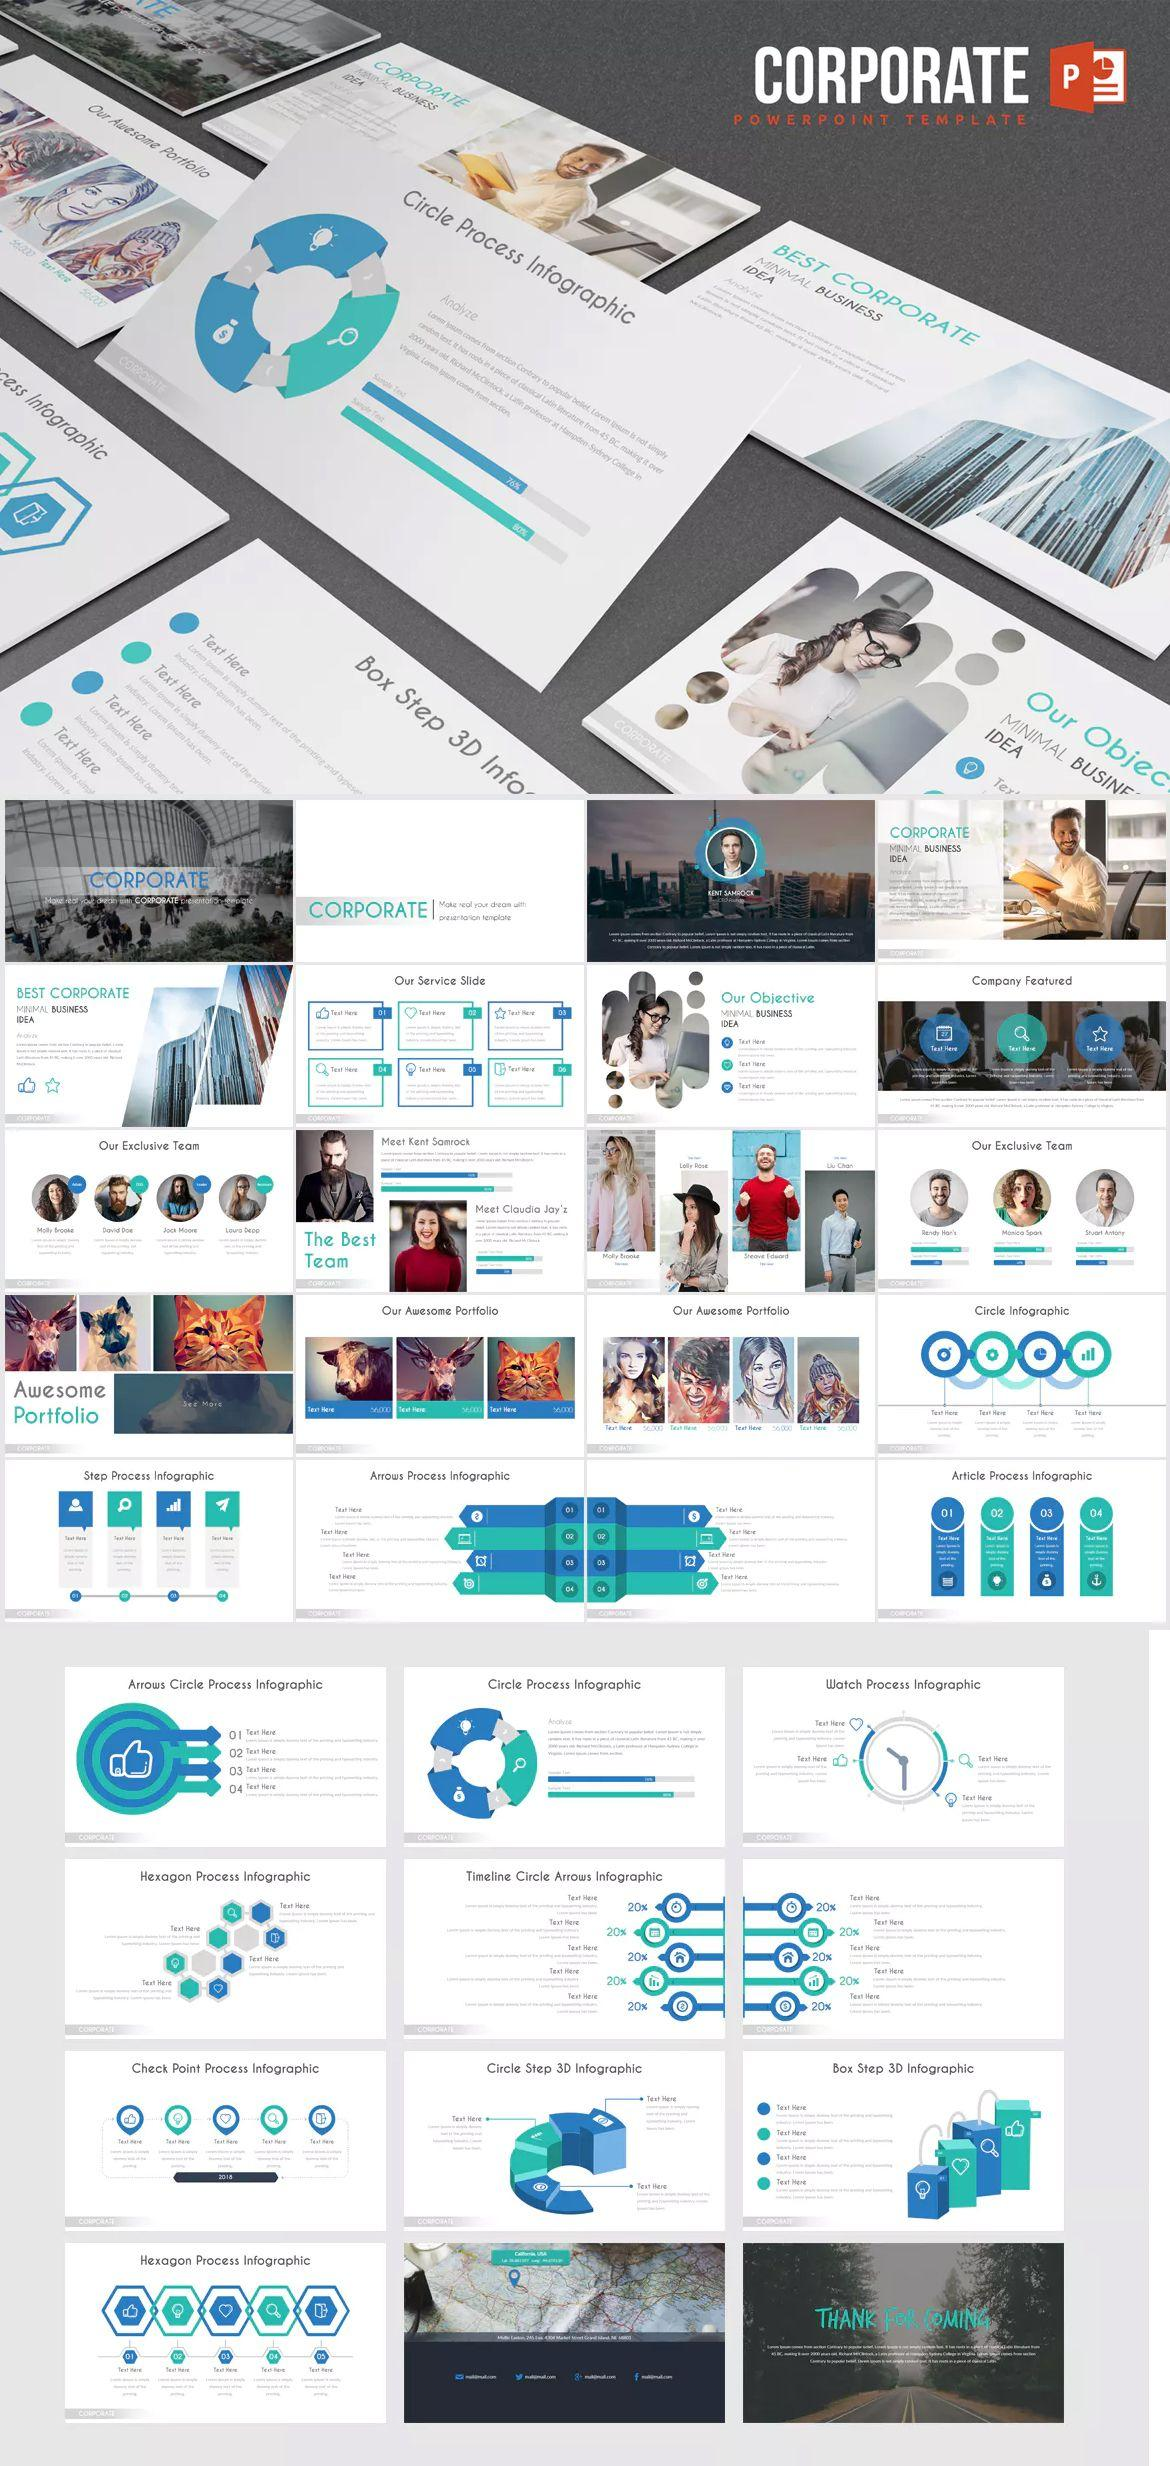 Corporate Ppt Presentation Templates